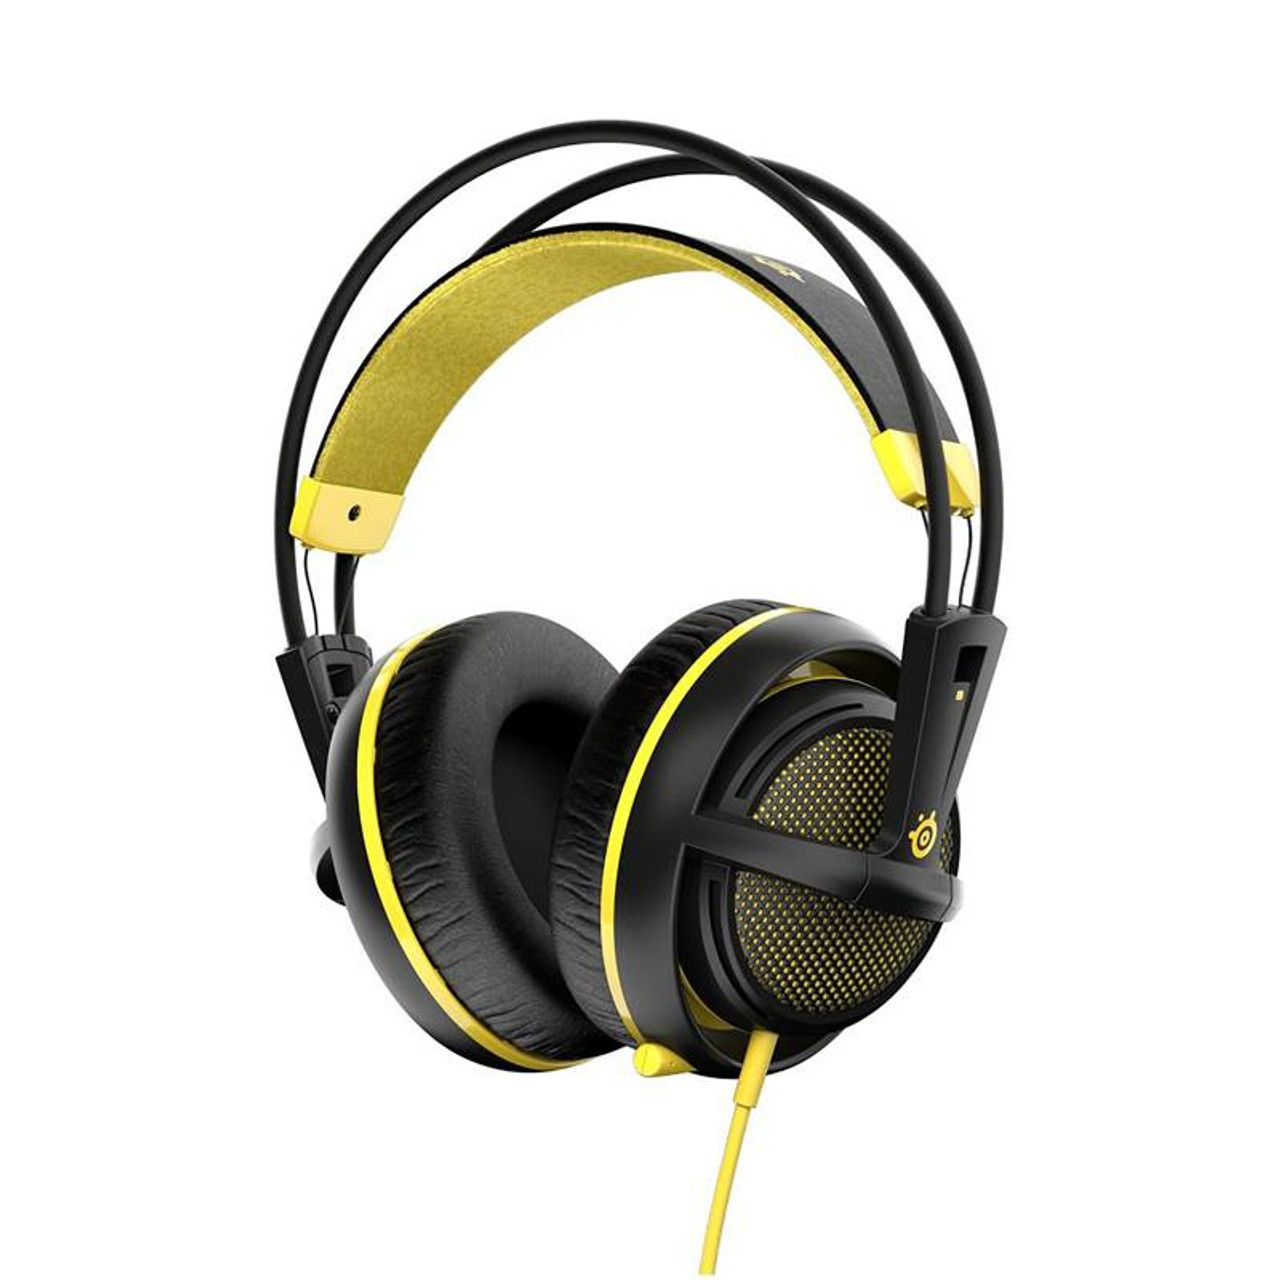 Product image for SteelSeries Siberia 200 Gaming Headset Proton Yellow   CX Computer Superstore